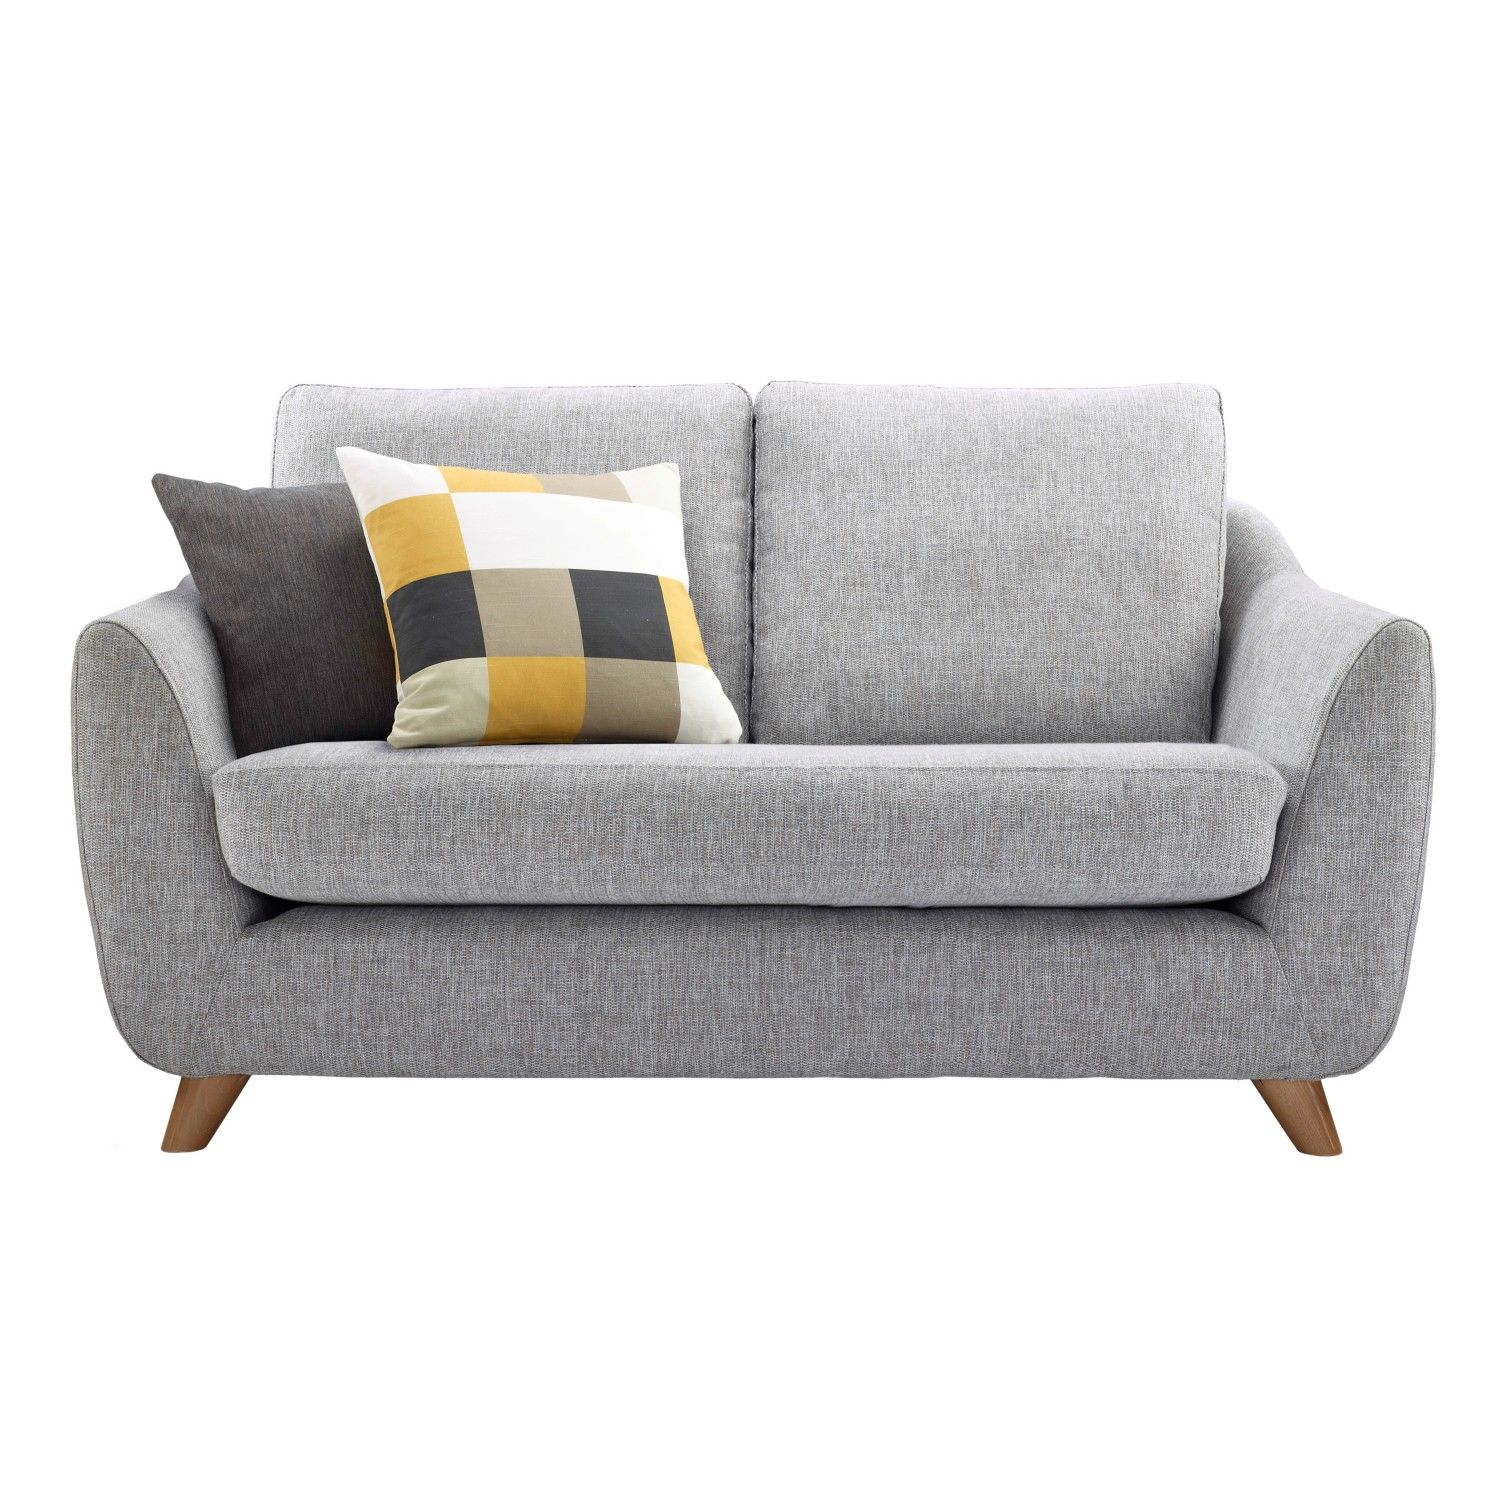 Sofa Couches loveseats for small spaces cheap small sofa decoration